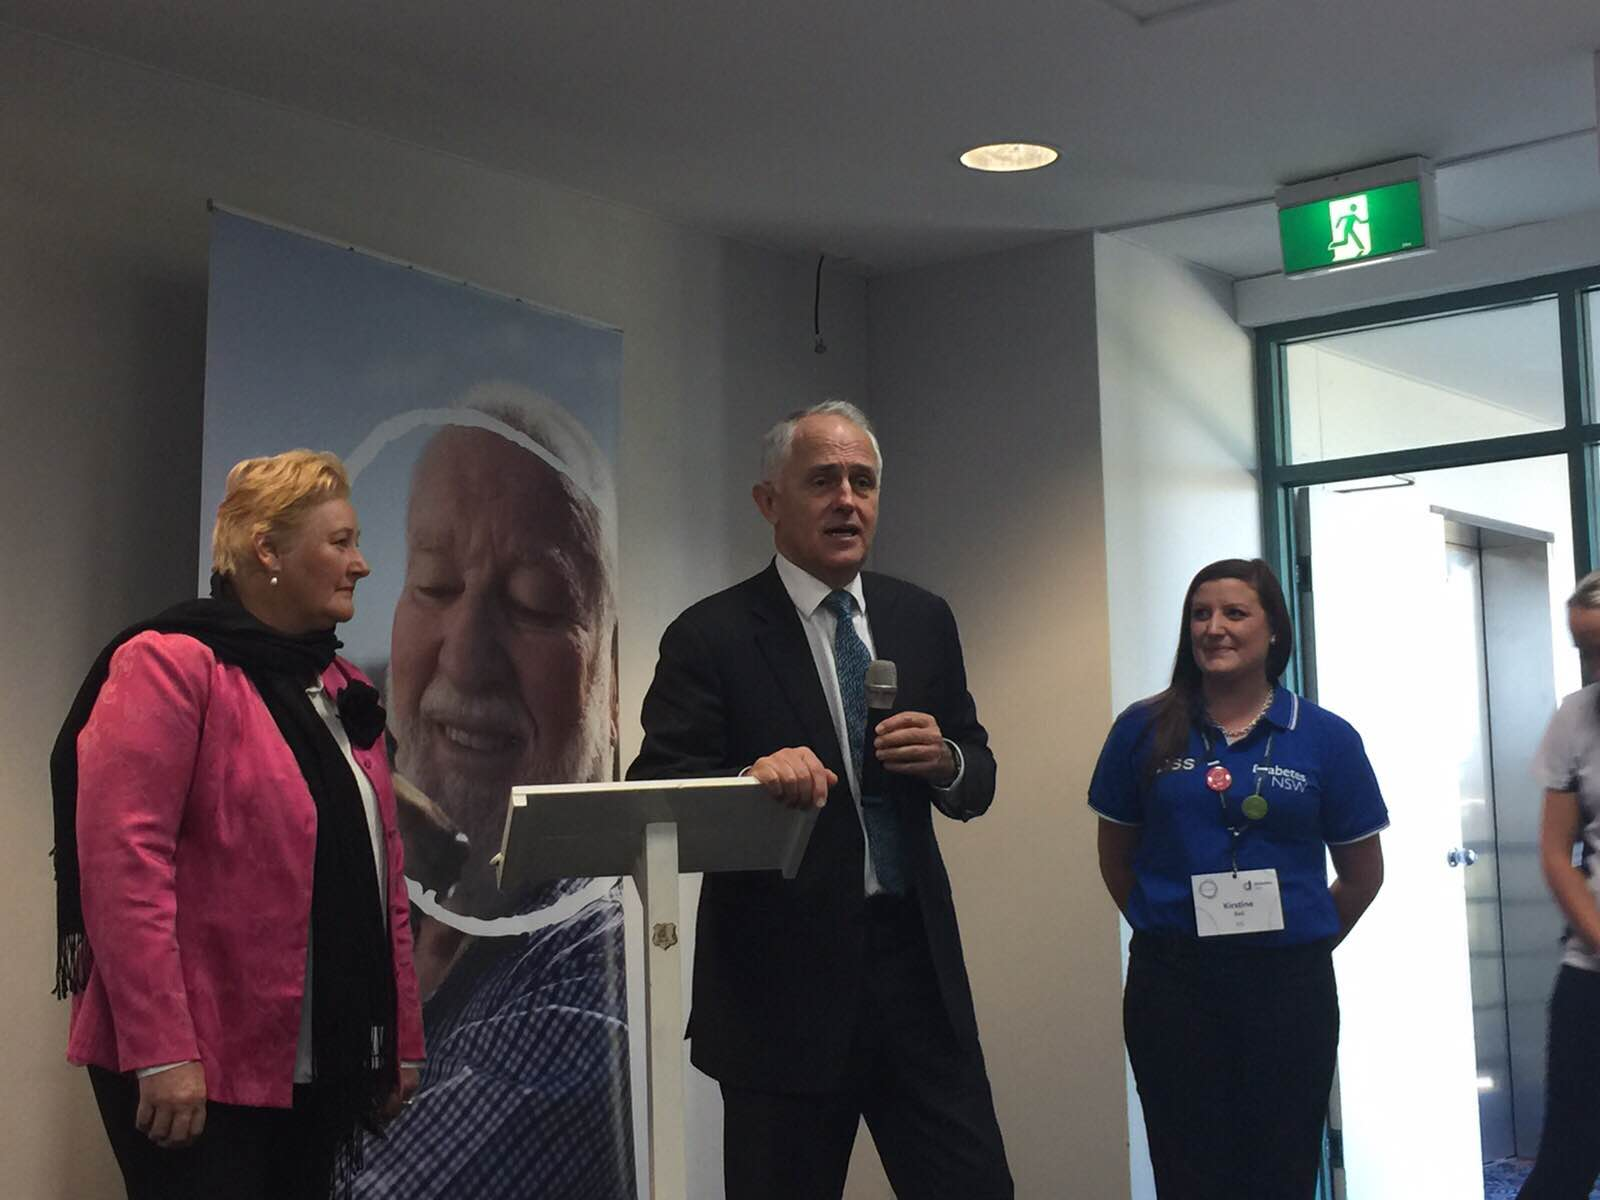 PM Malcolm Turnbull visits St George Live Your Life Forum